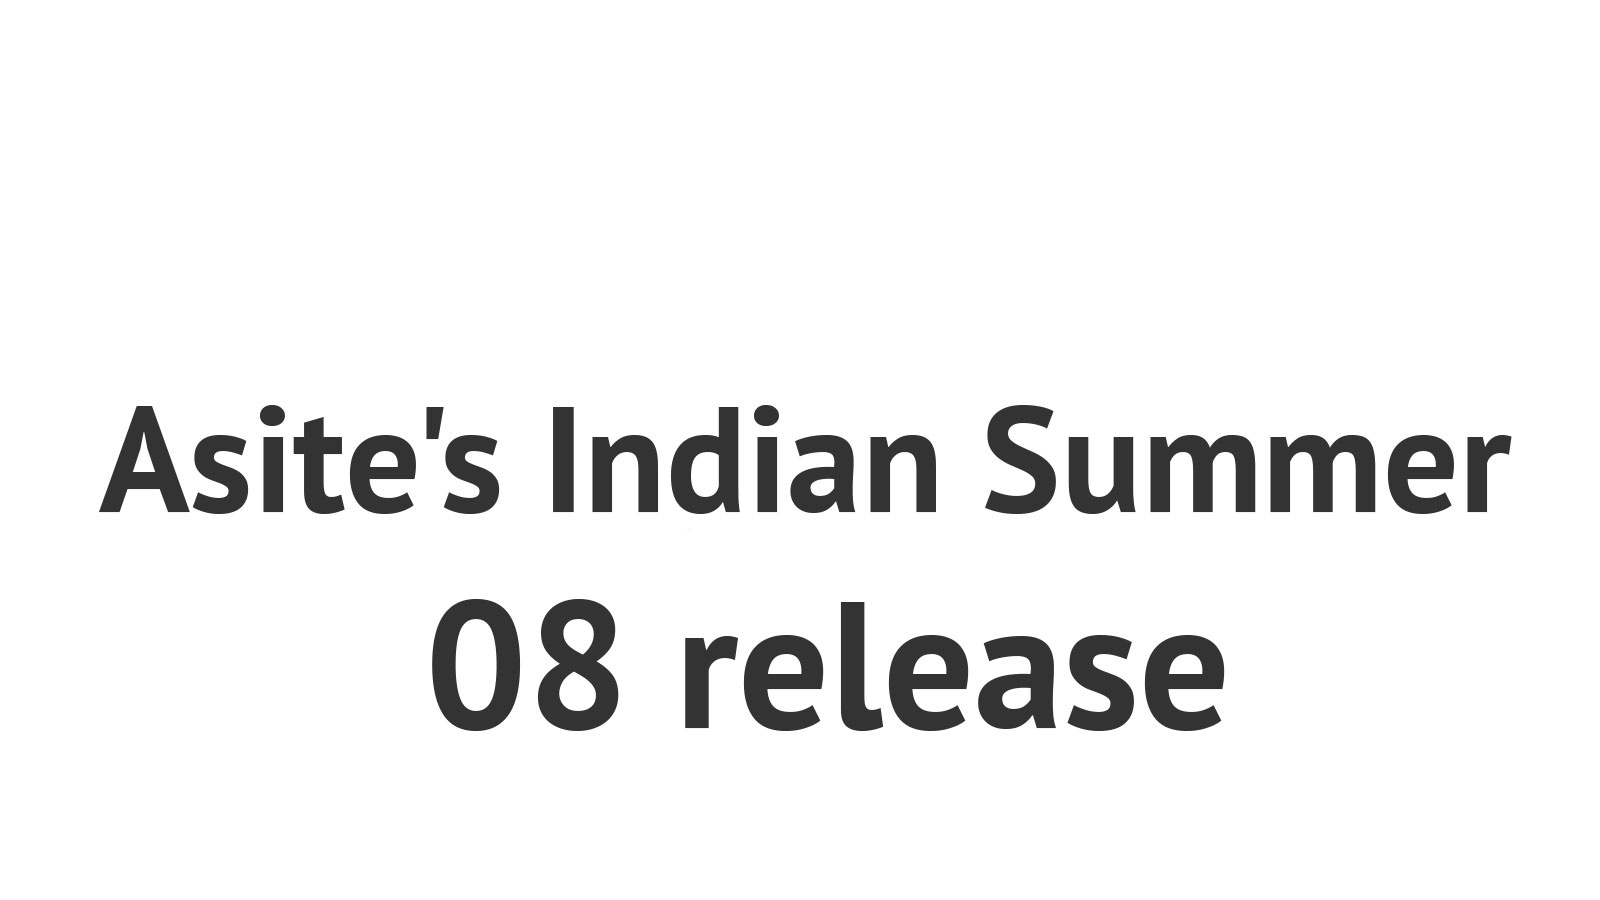 Asite's Indian Summer 08 release delivers Contract Management and Fully Customisable Forms via Microsoft InfoPath